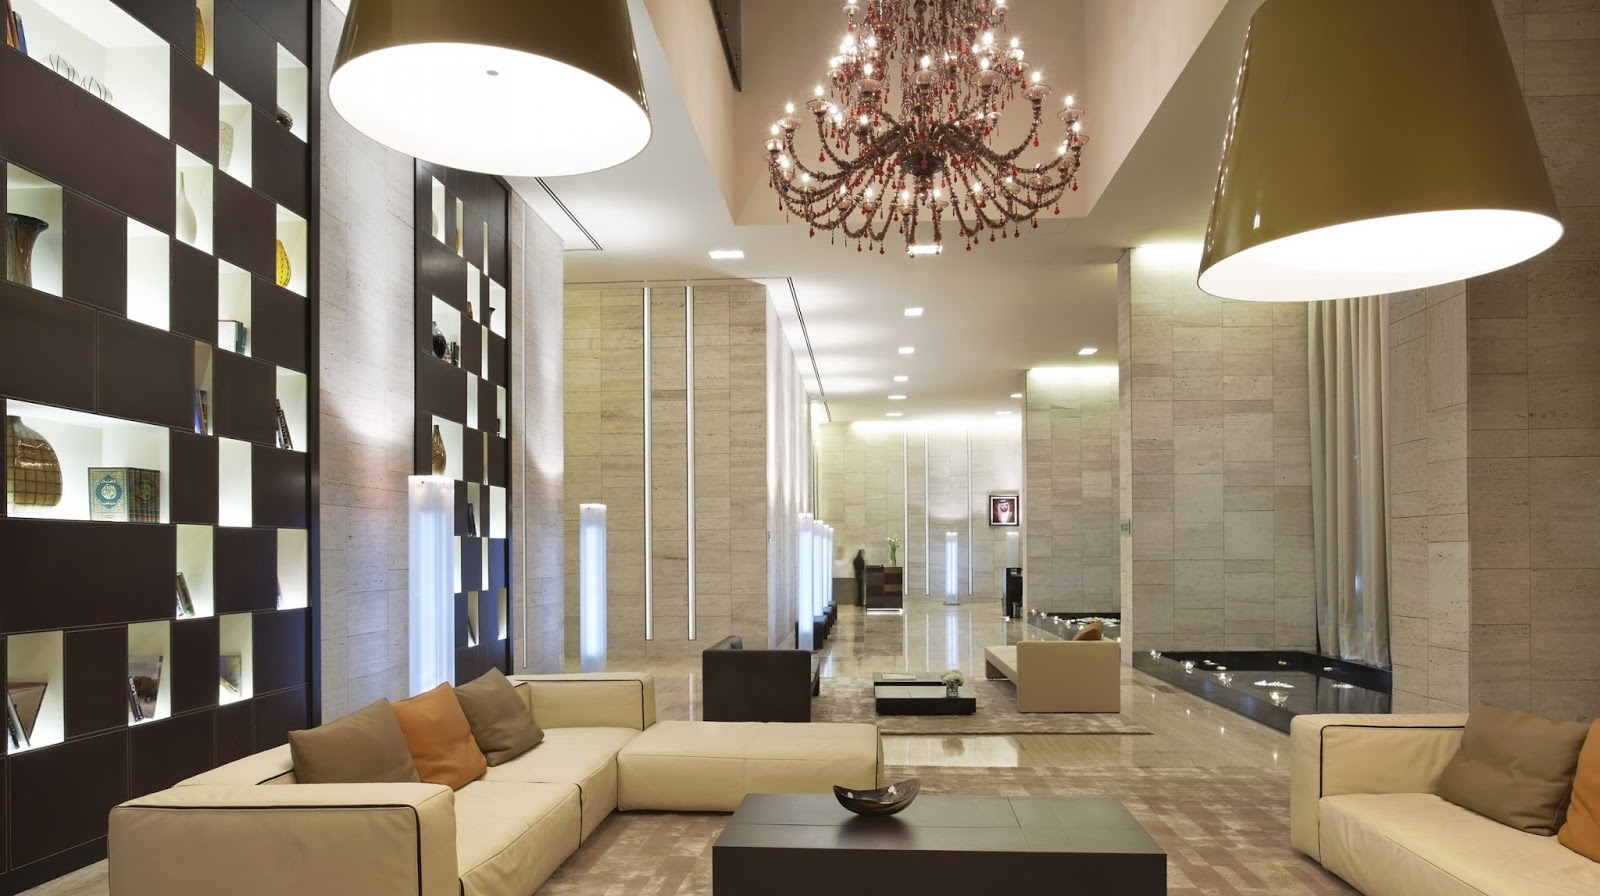 List of interior design firms in dubai for Interior design companies